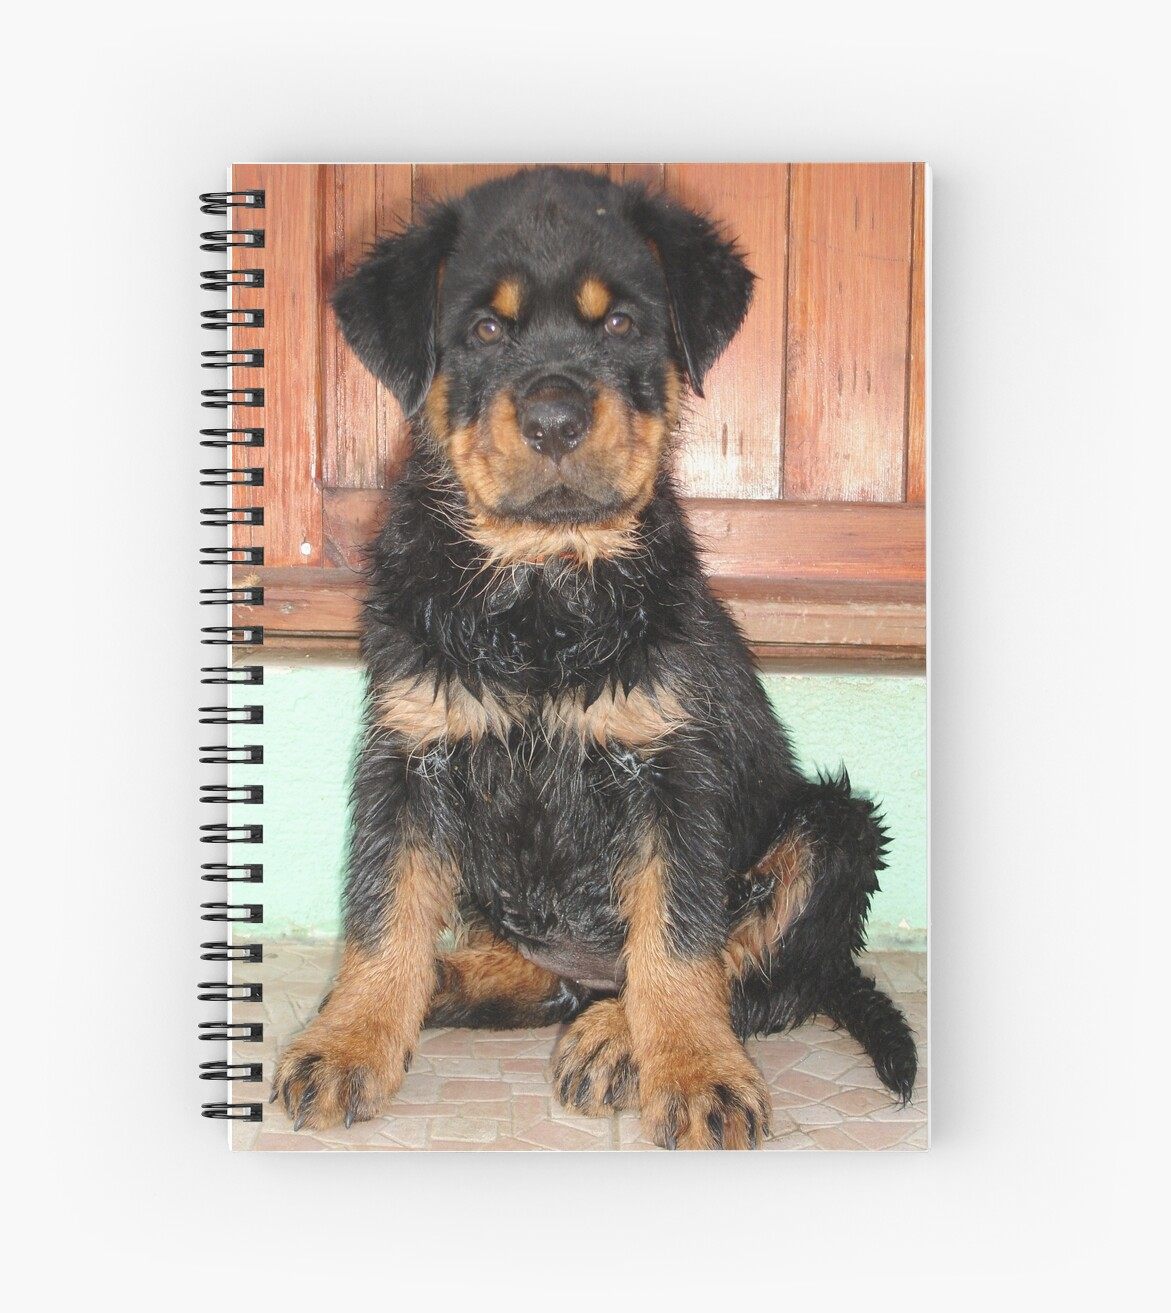 A Discontented and Wet Rottweiler Puppy  by taiche